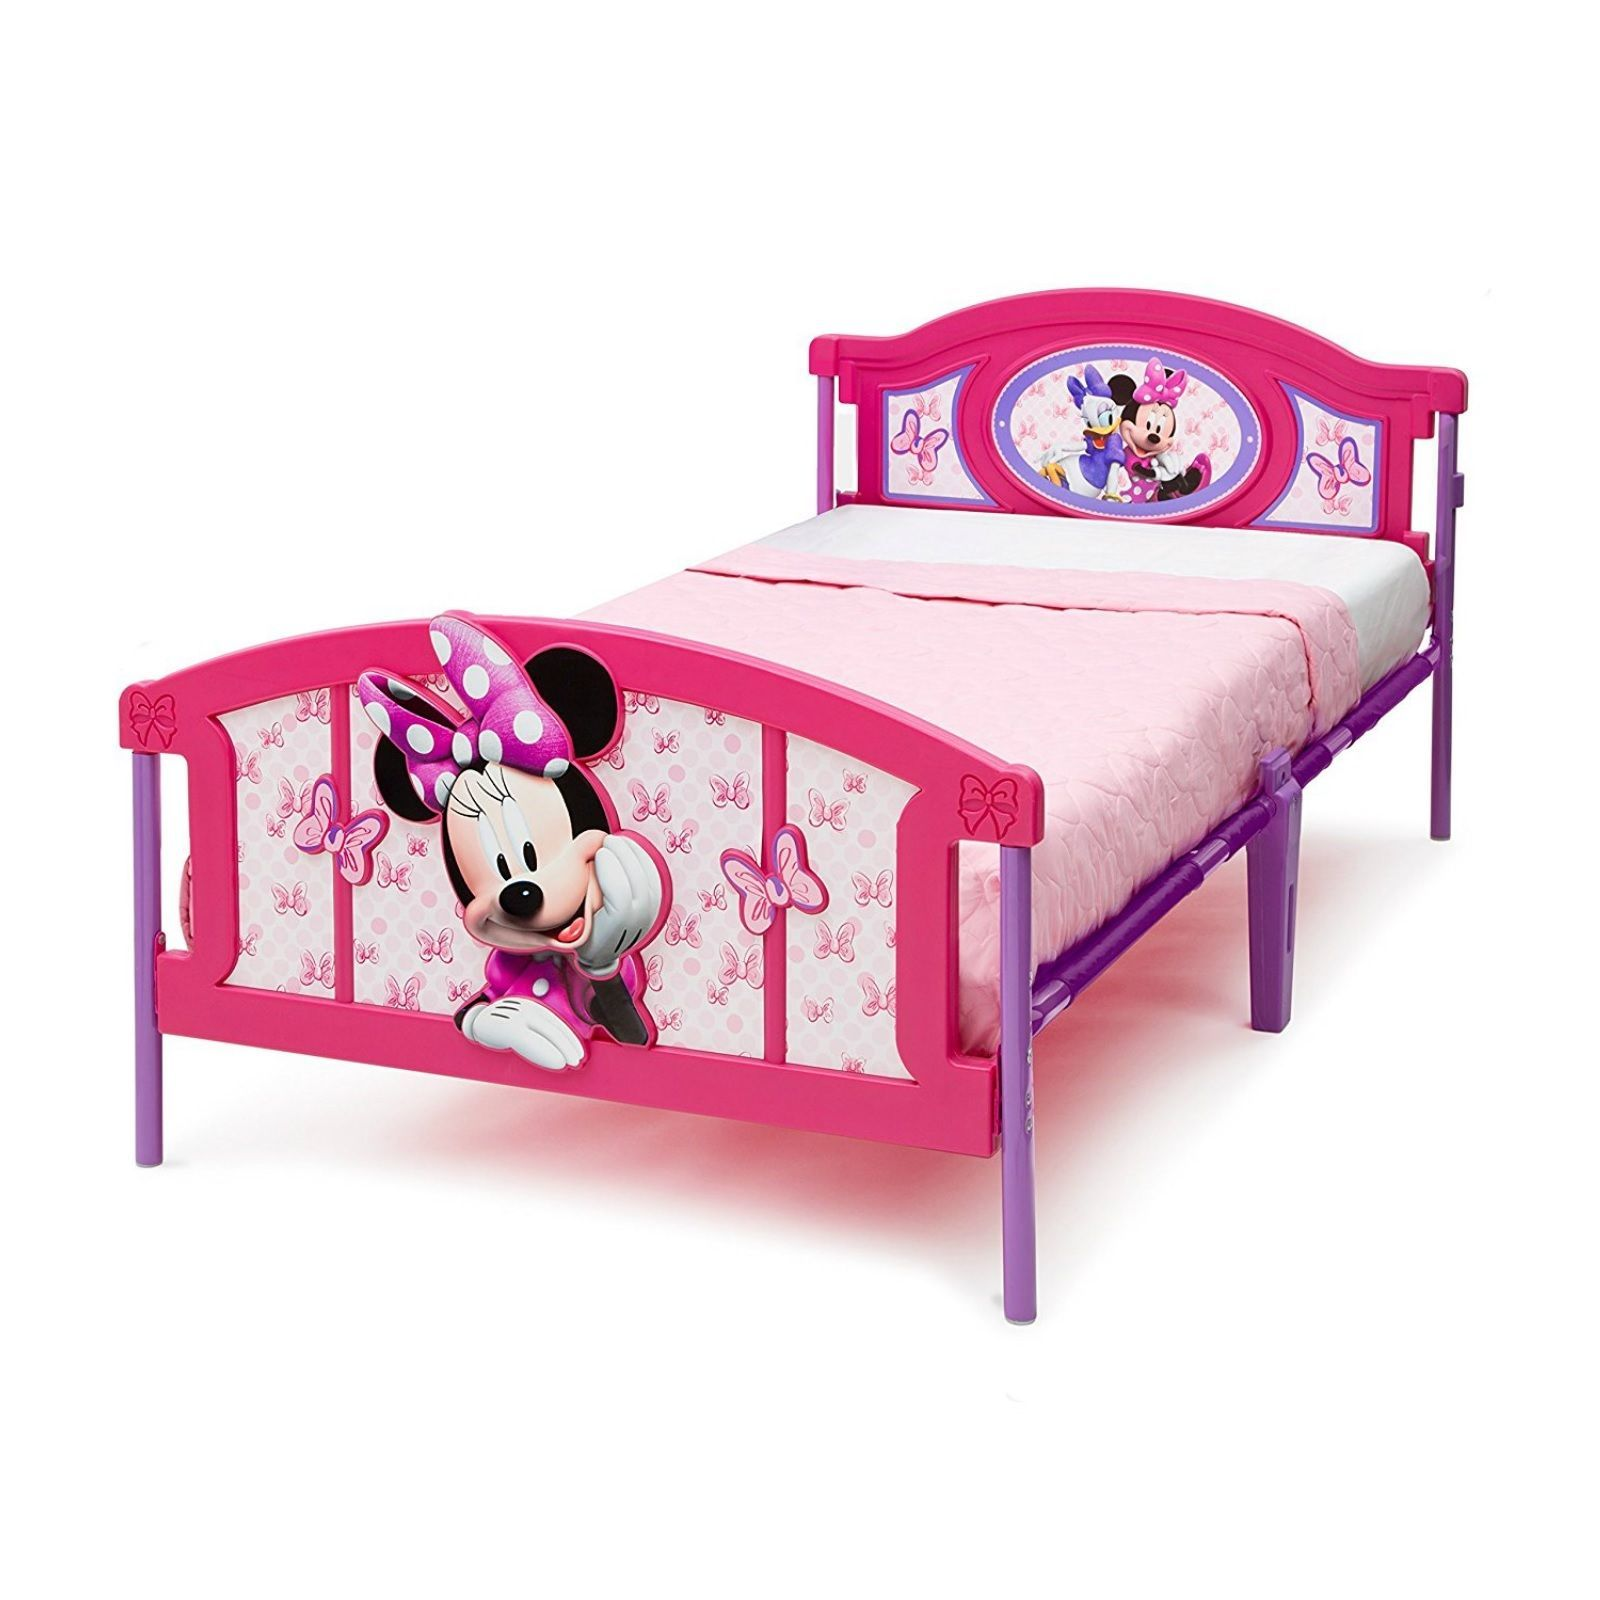 Twin Bed Frame For Kids Girls Children Bedroom Furniture